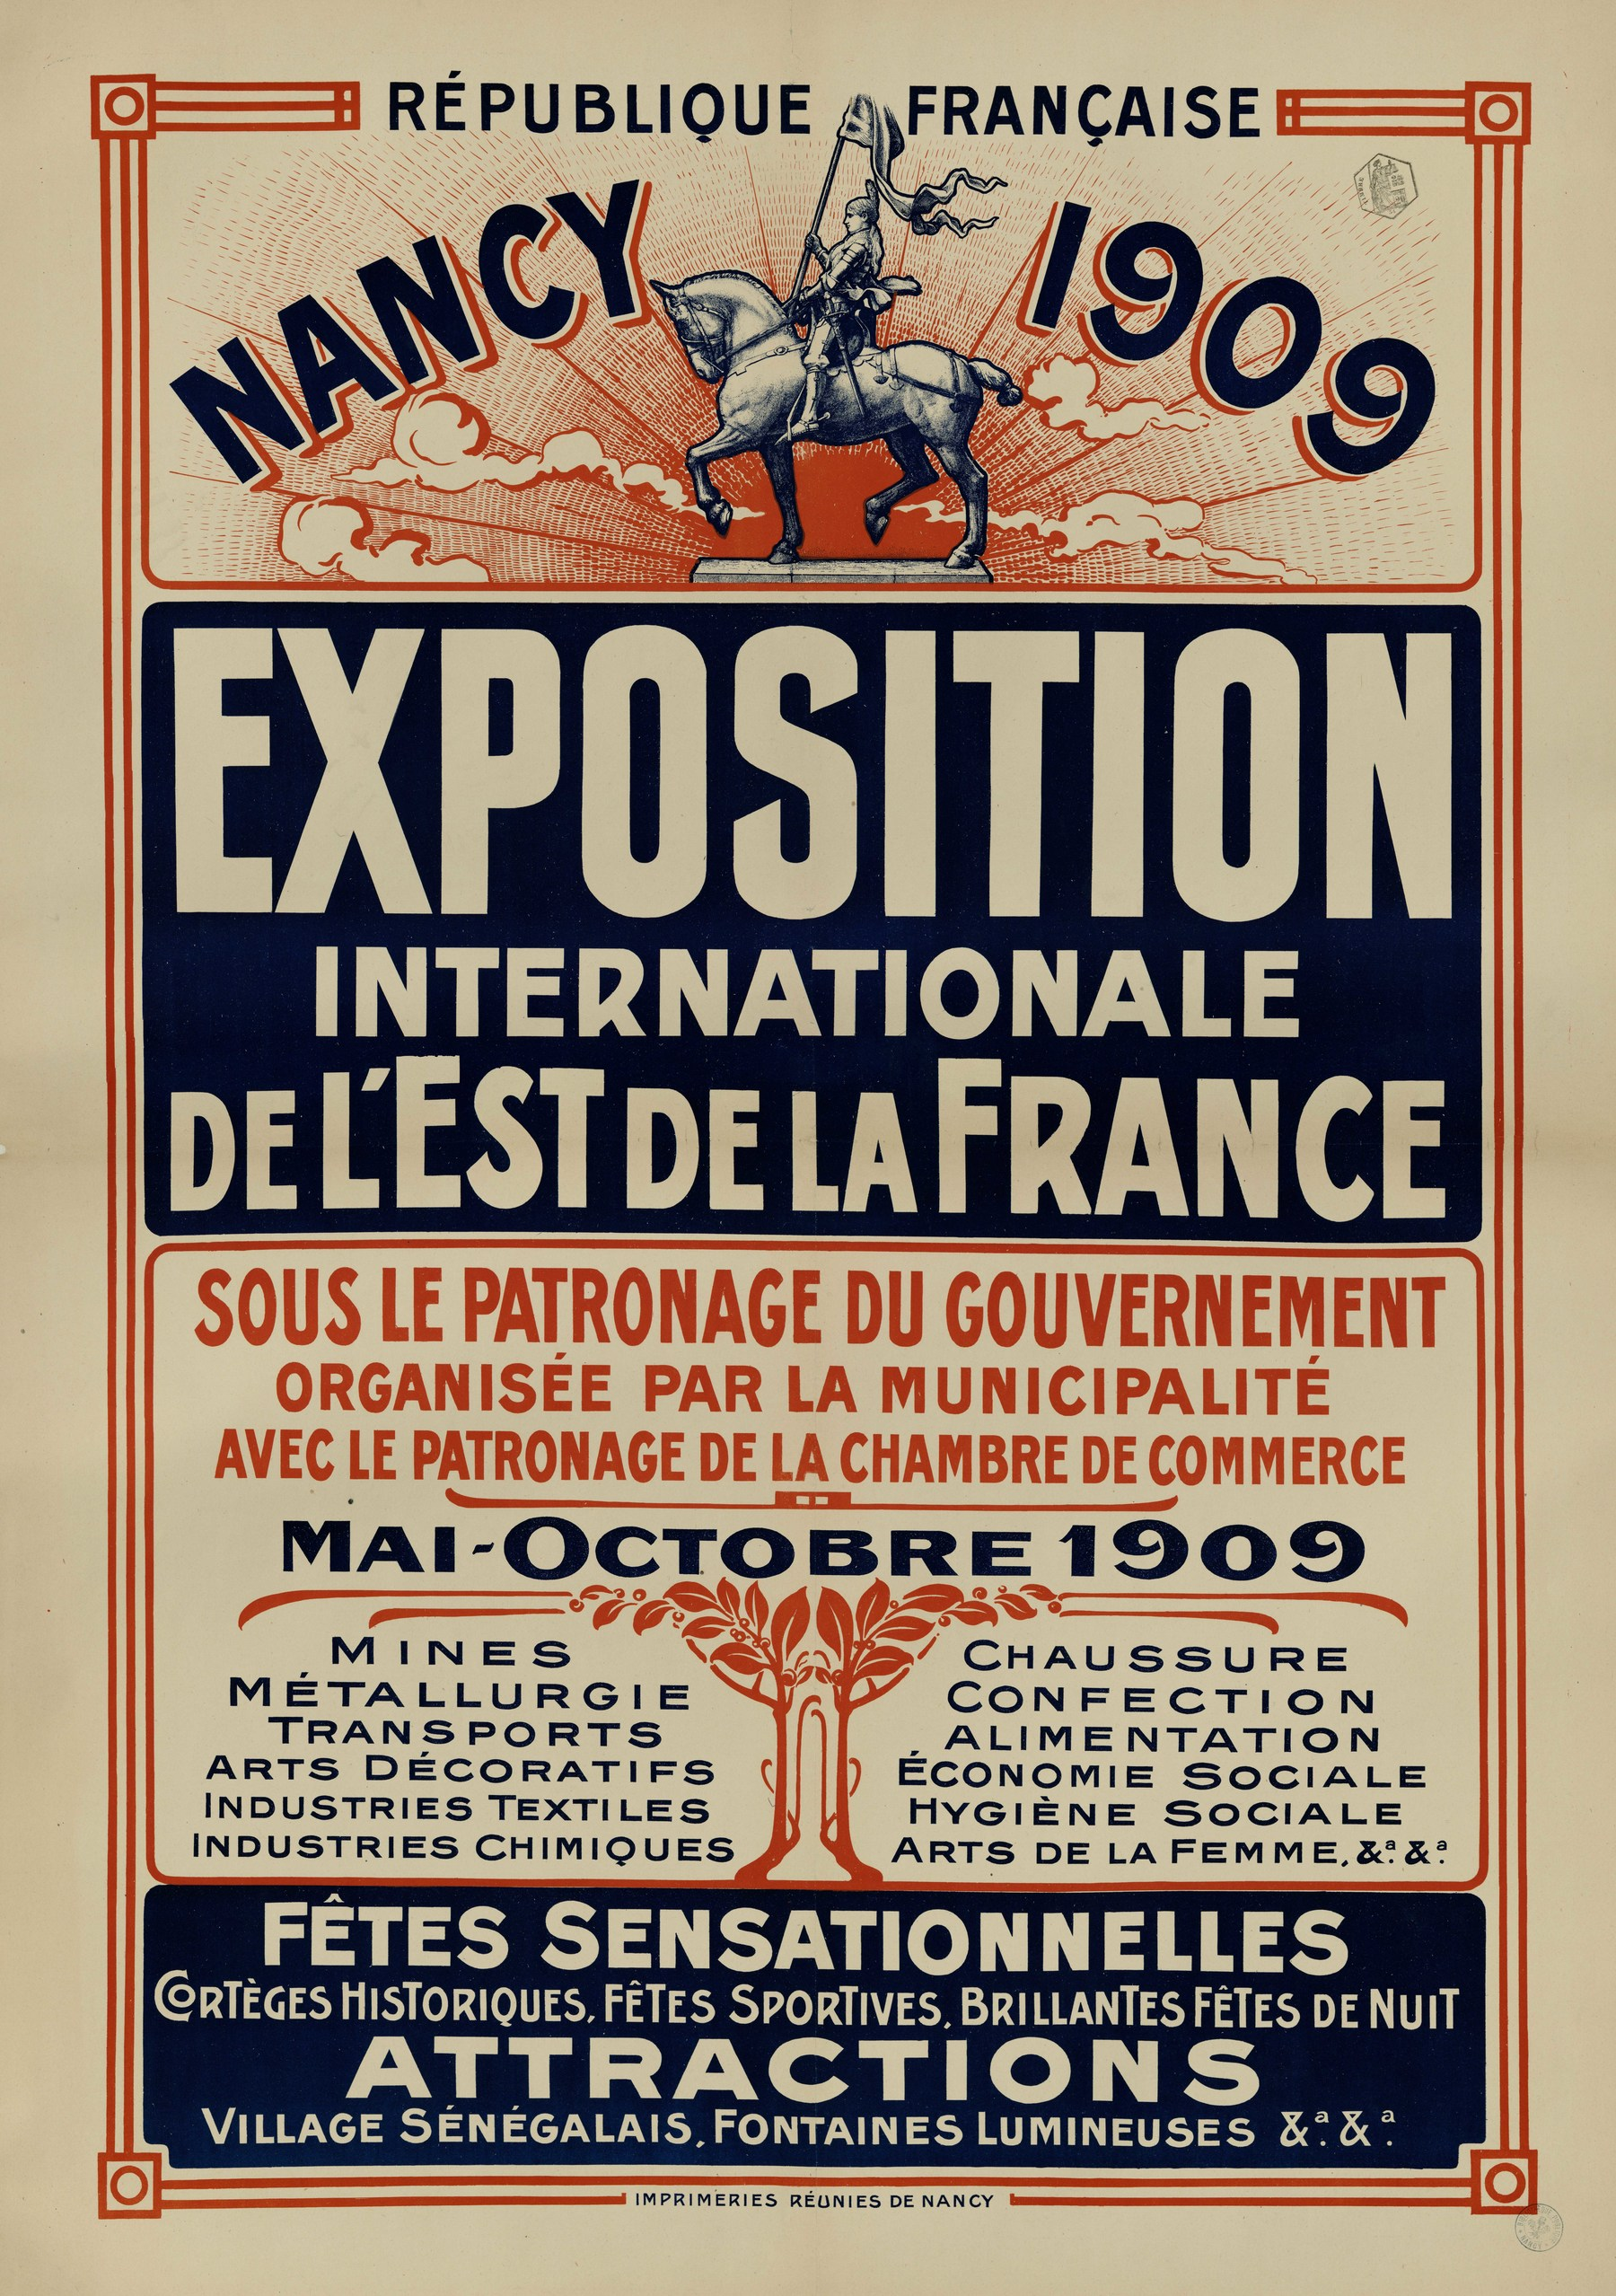 Contenu du Nancy 1909 Exposition Internationale de l'Est de la France